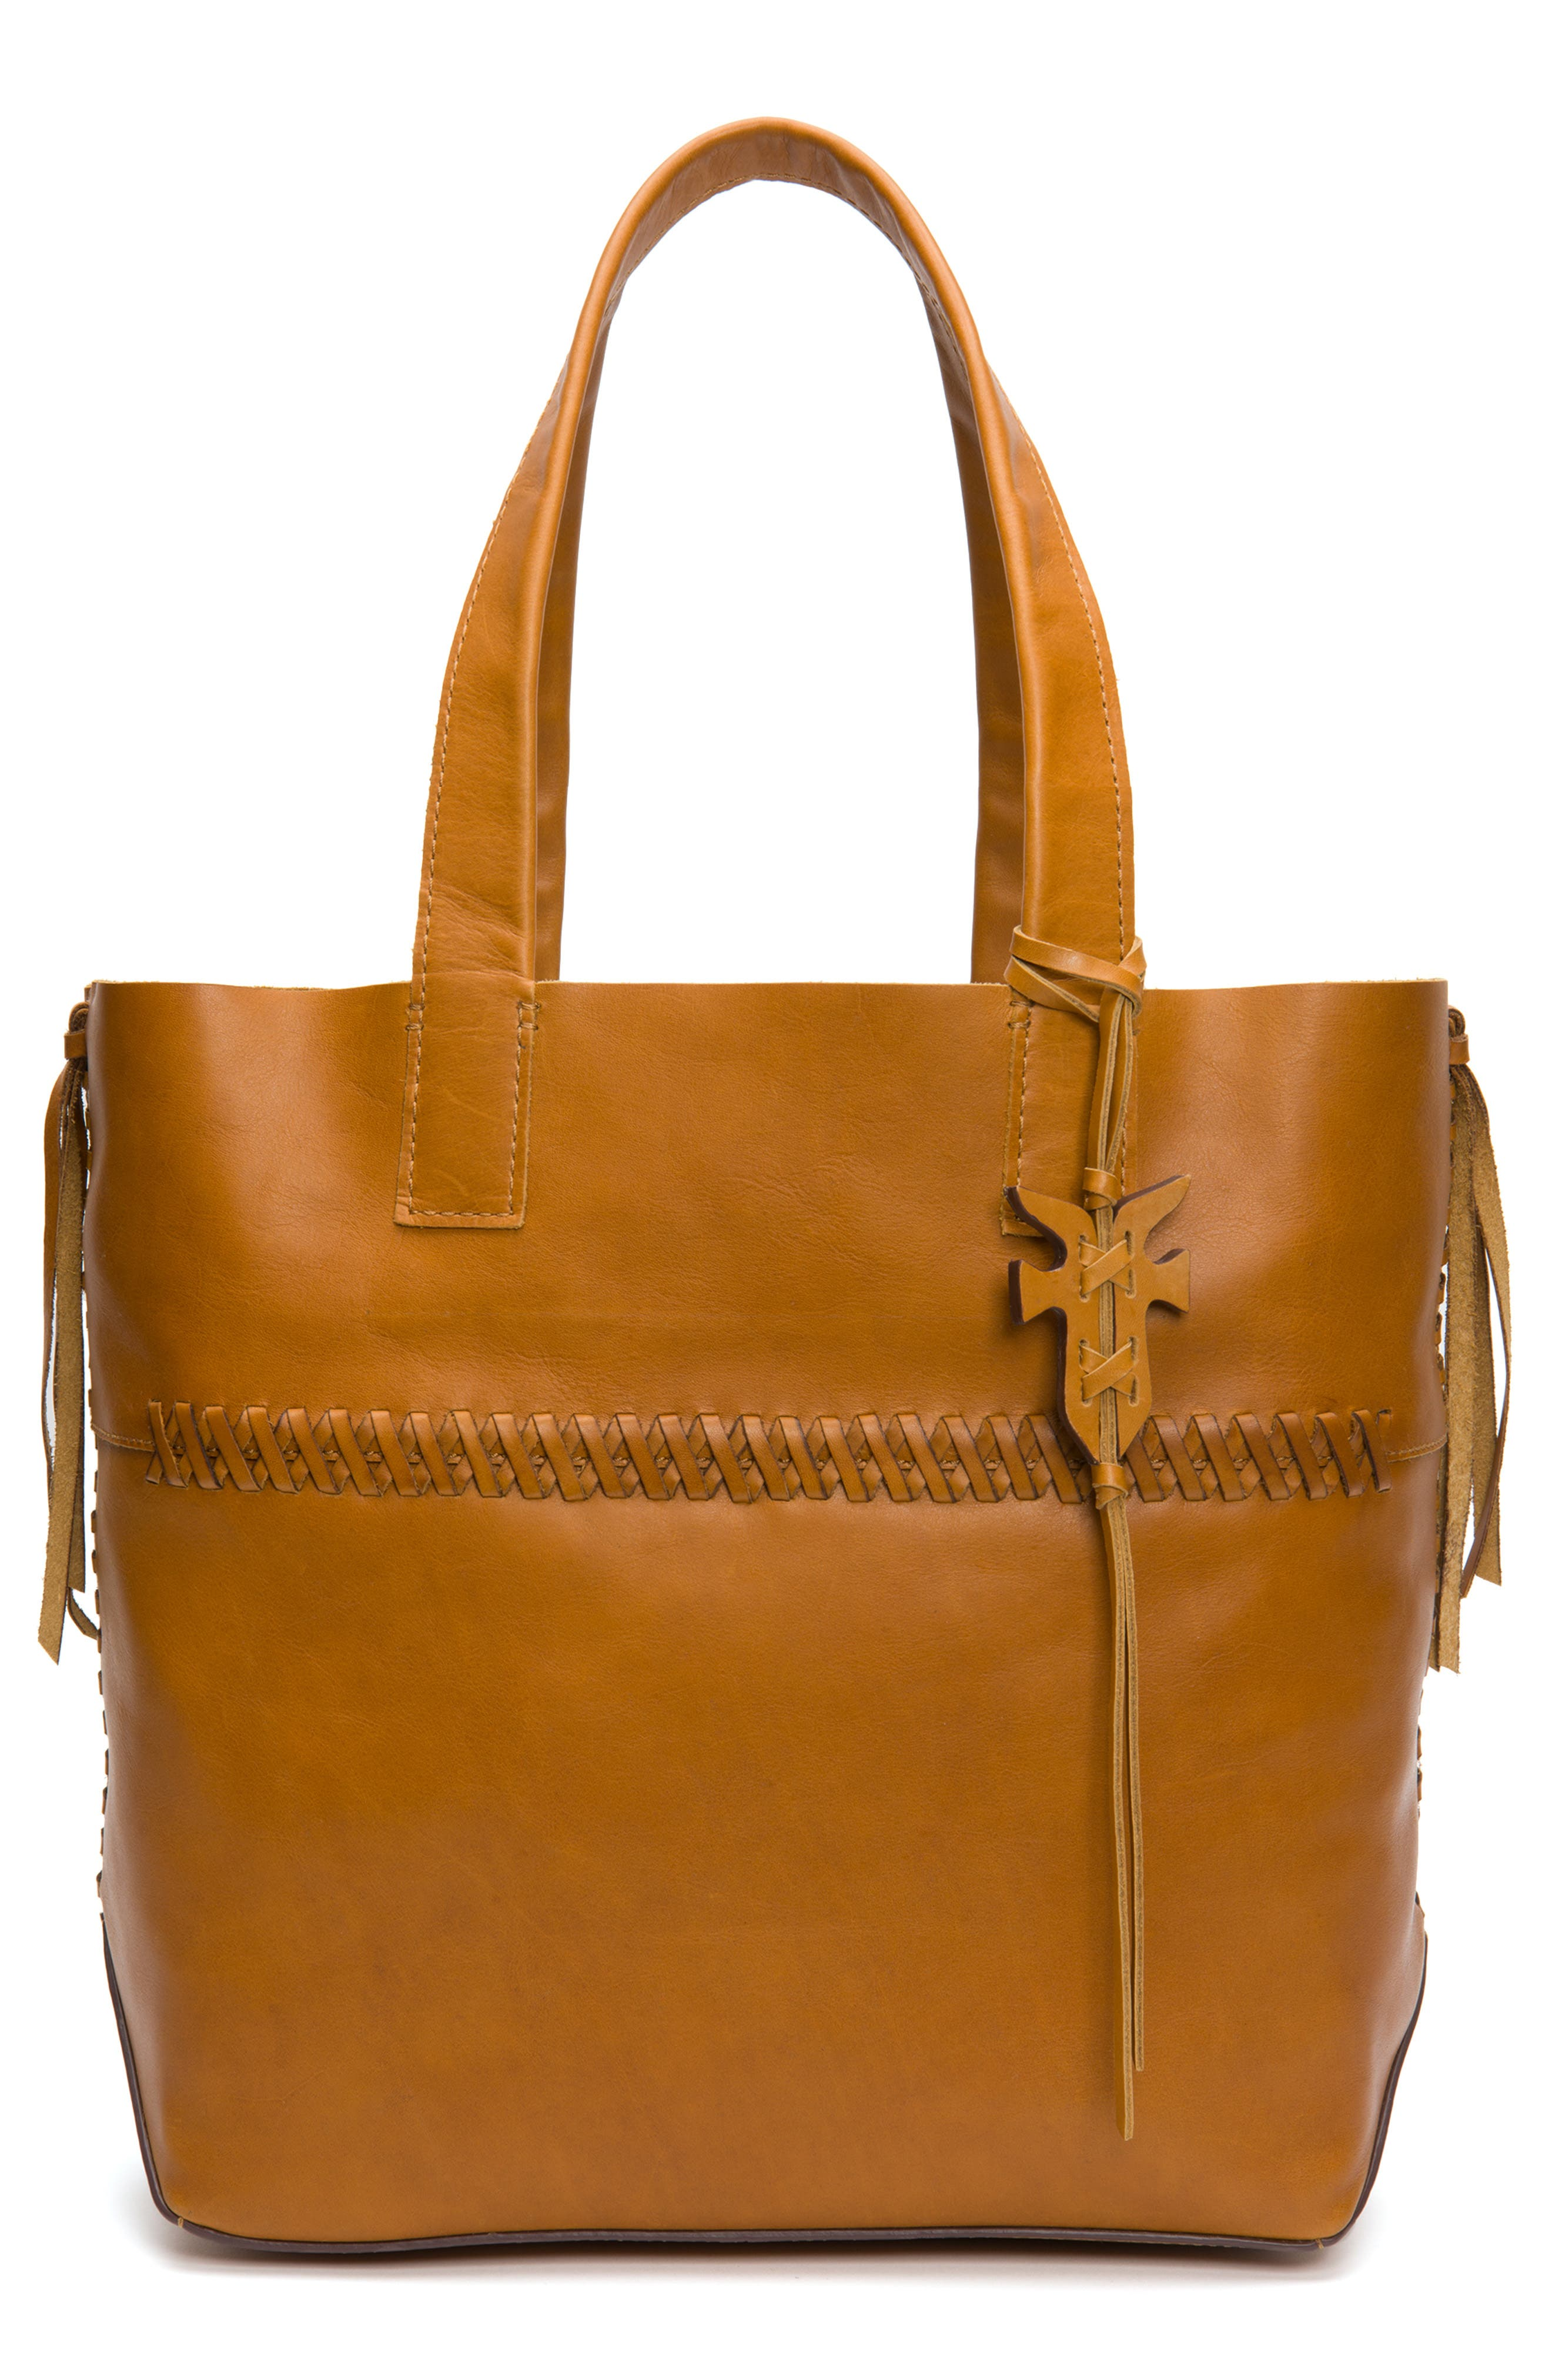 CARSON WHIPSTITCH CALFSKIN LEATHER TOTE - BROWN